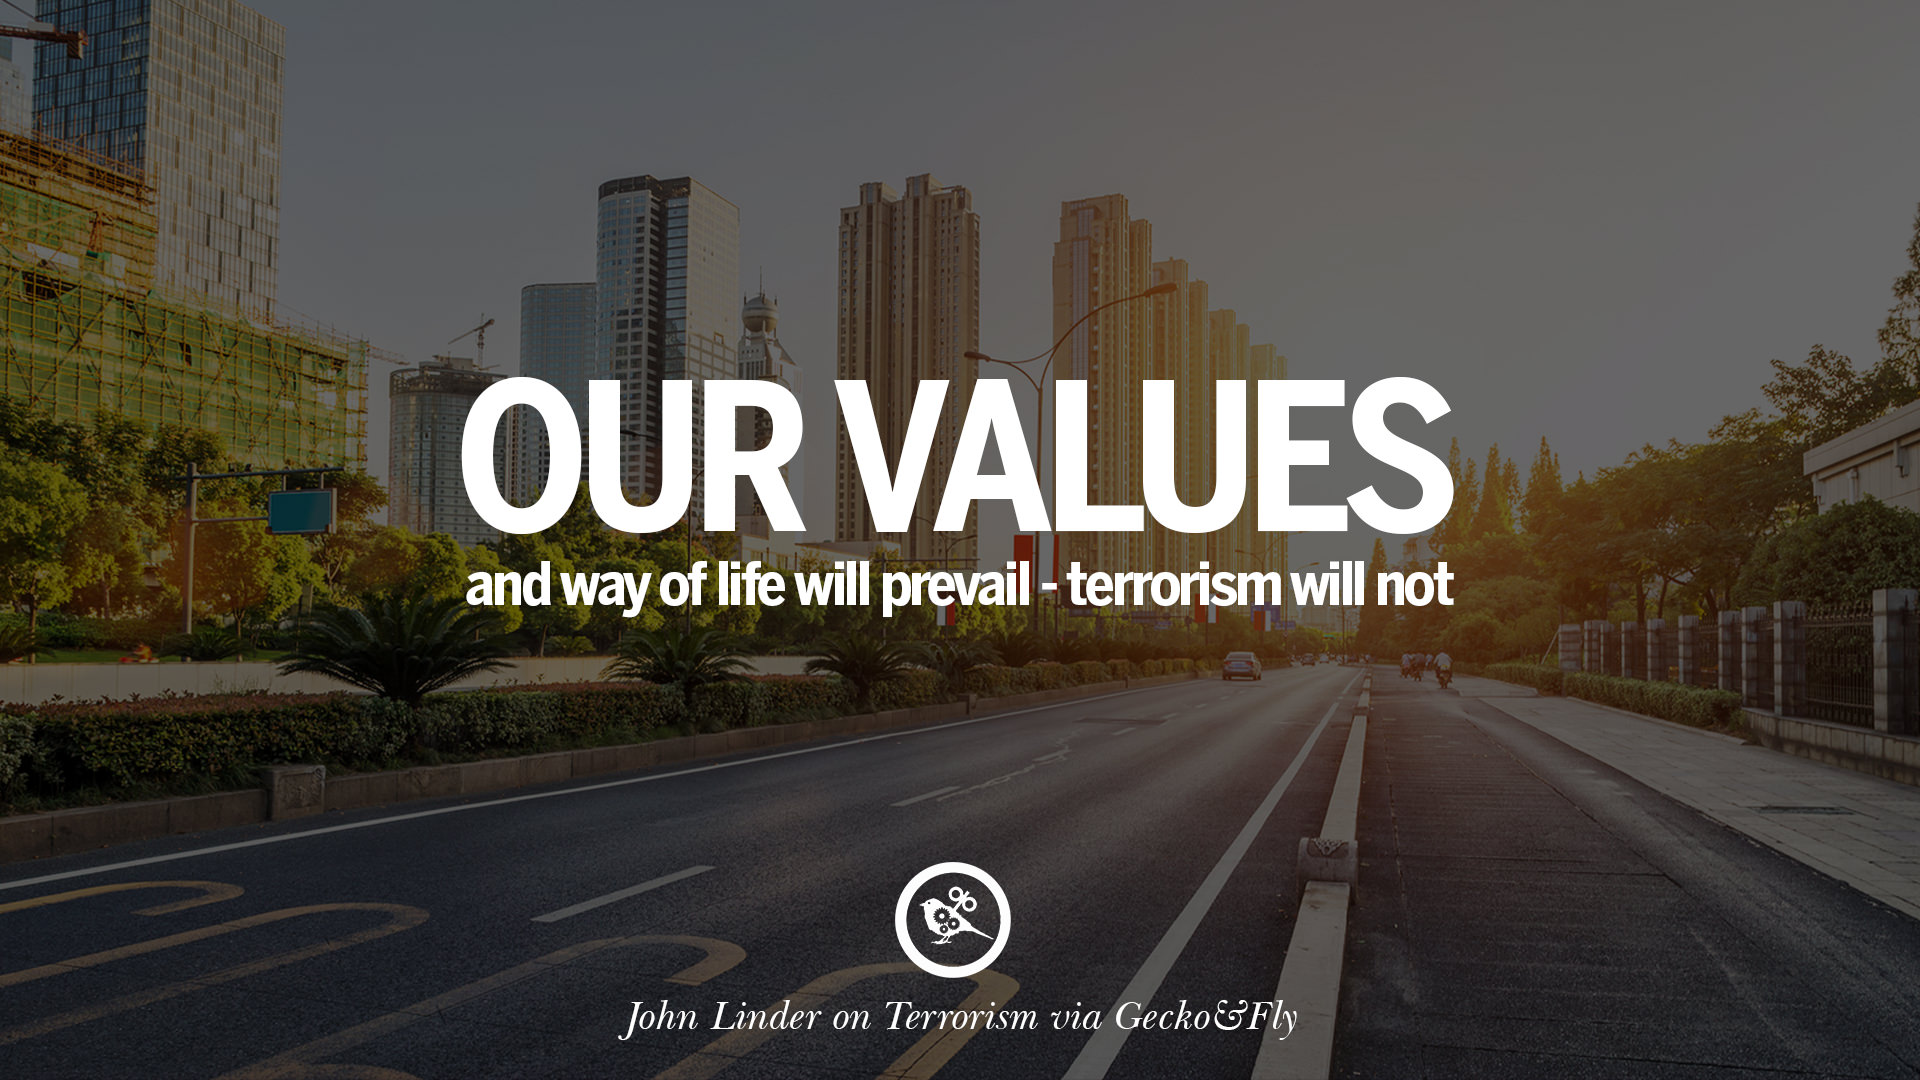 List Of Inspirational Quotes About Life 21 Inspiring Quotes Against Terrorist And Religious Terrorism